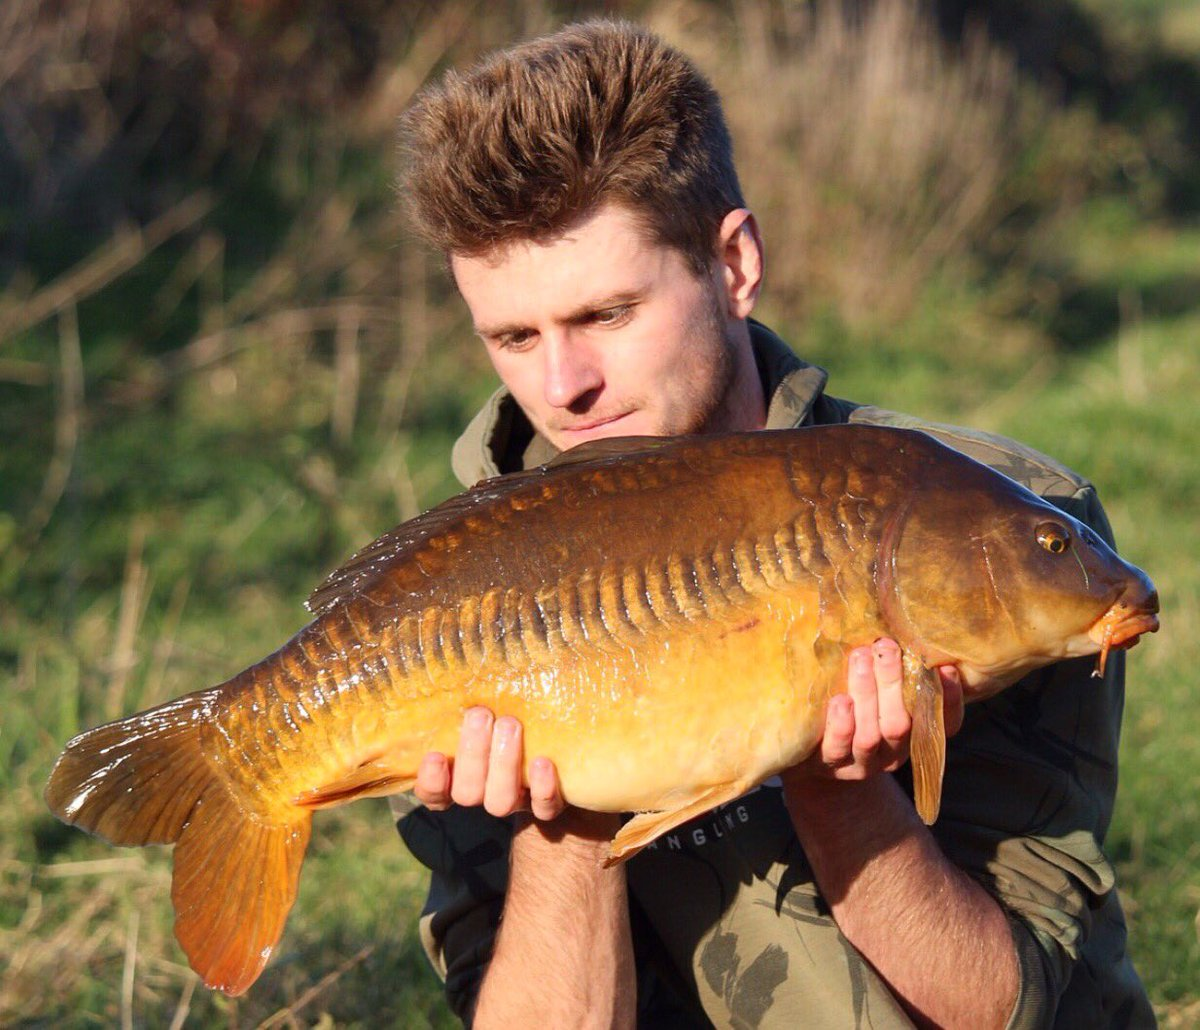 Stunning River Carp #carp #carpfishing #carpy https://t.co/whVO6k1Iq4